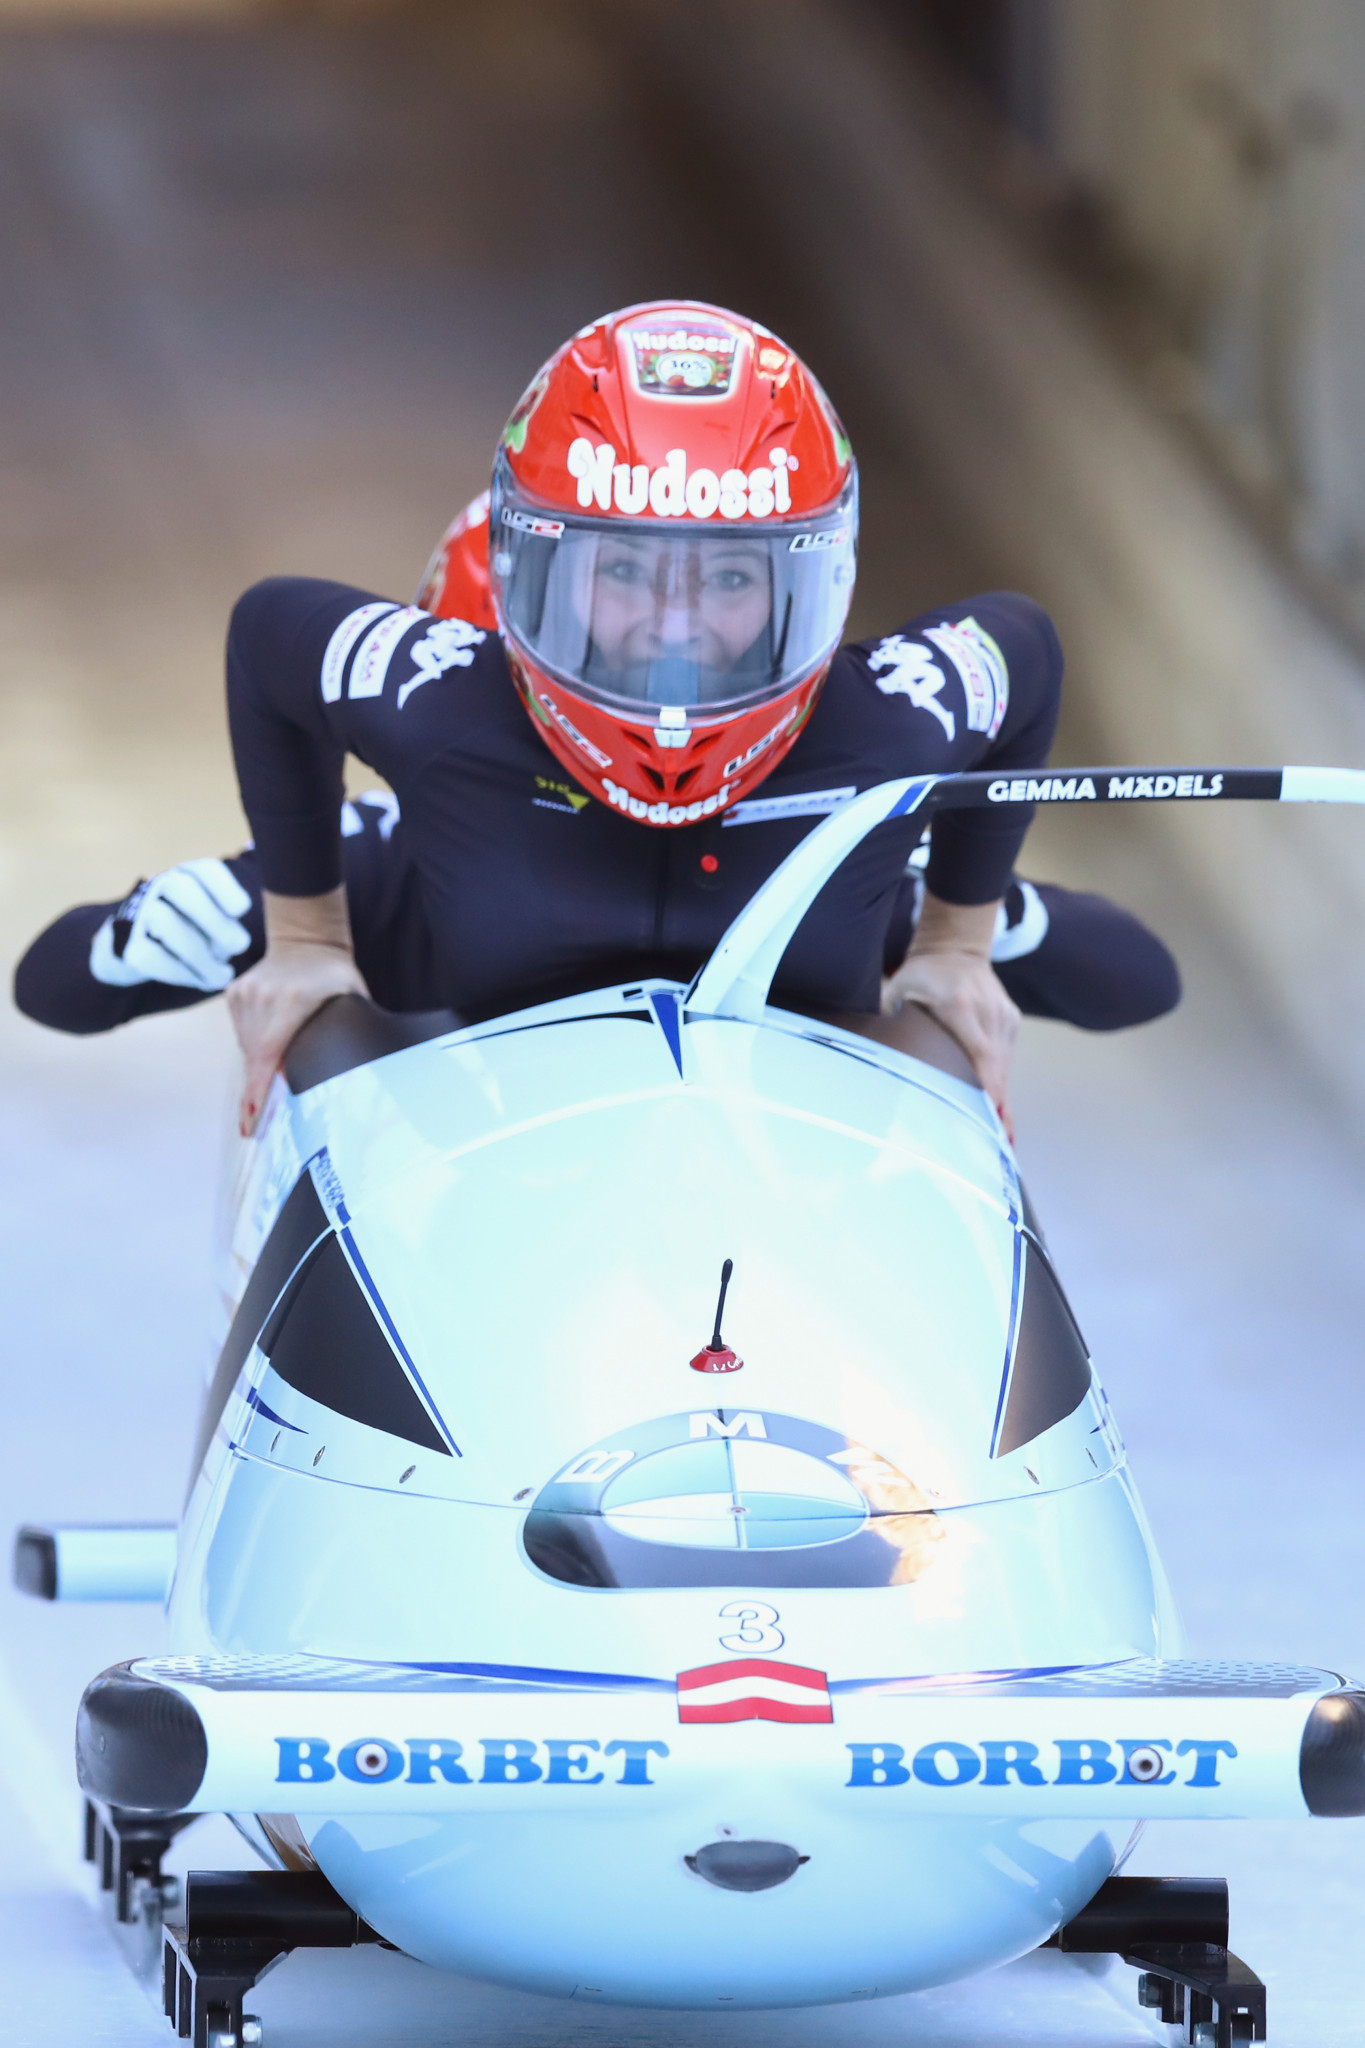 Christina Hengster departs as Austria's most successful bobsleigh athlete ©Getty Images